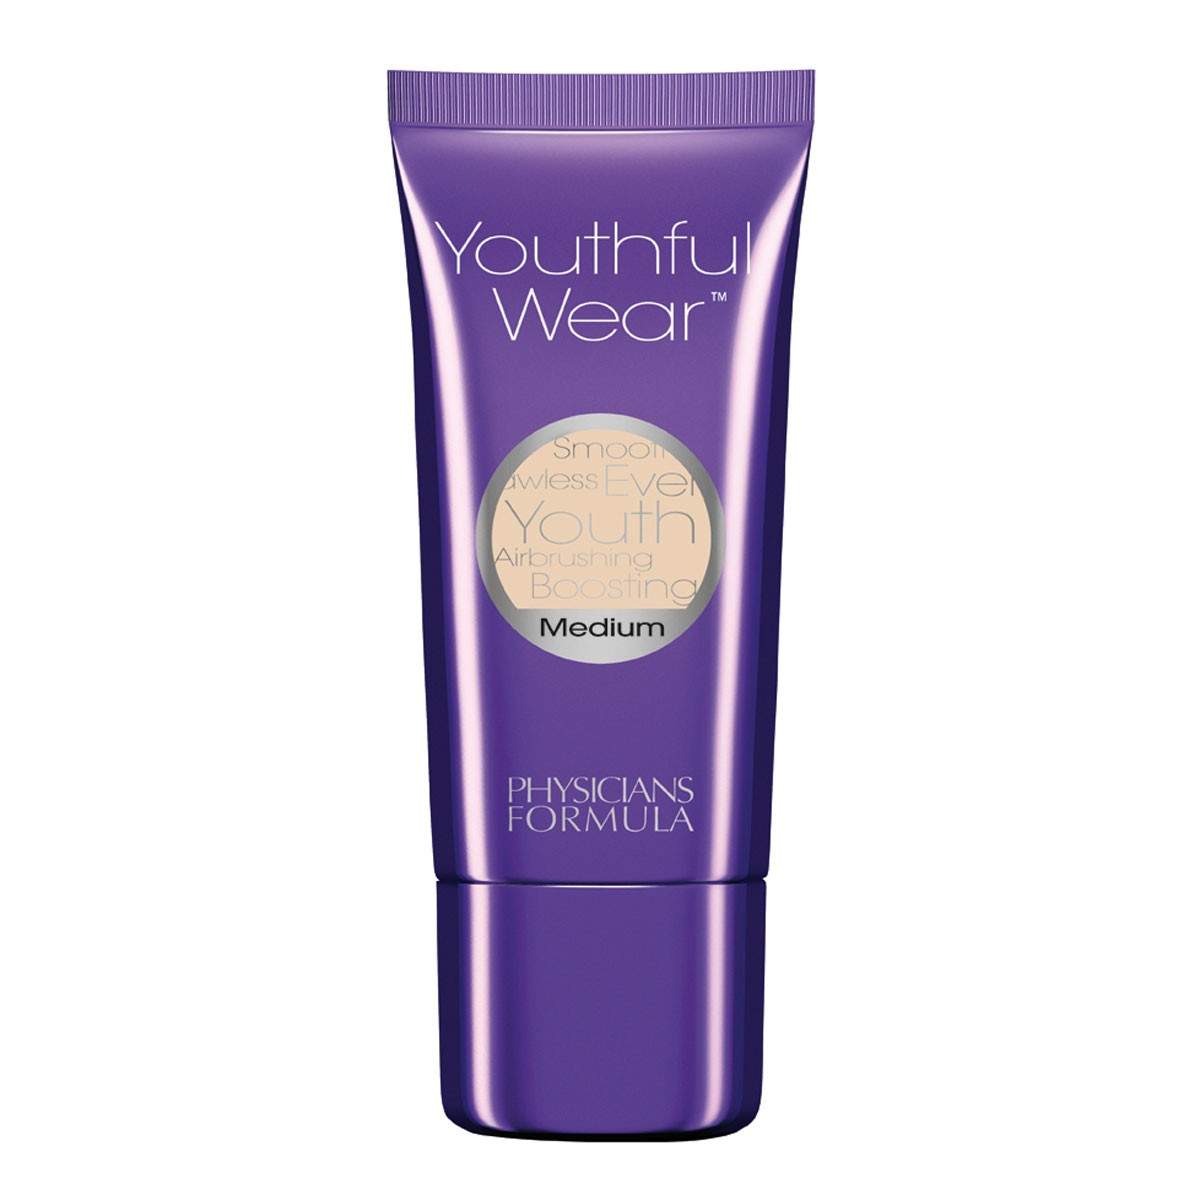 Foundation - Youthful Wear™ Cosmeceutical Youth-Boosting Foundation